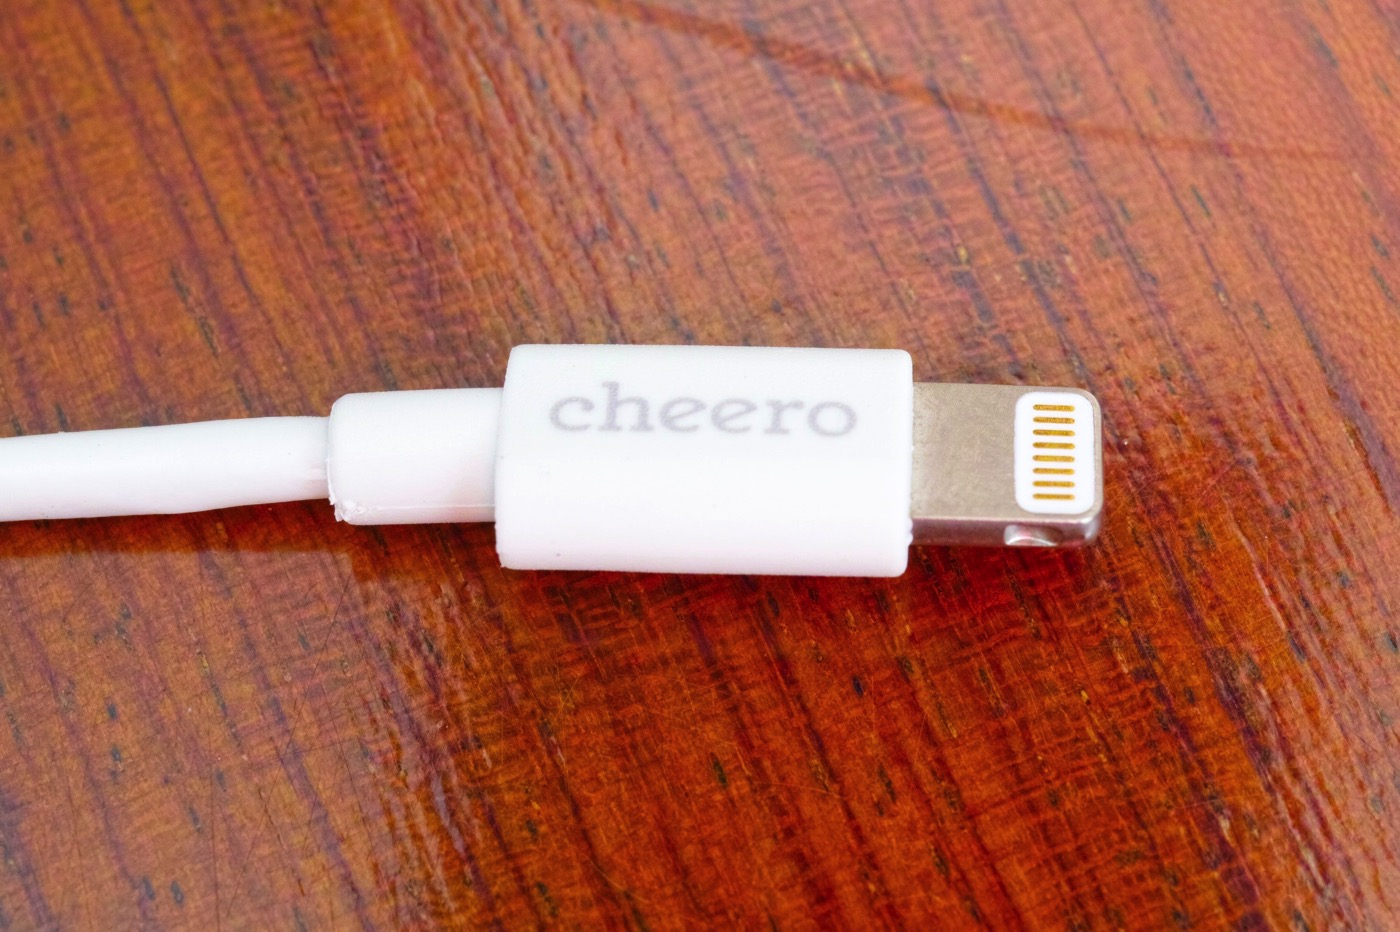 Cheero standard usb cable with lightning connector 100cm 00003